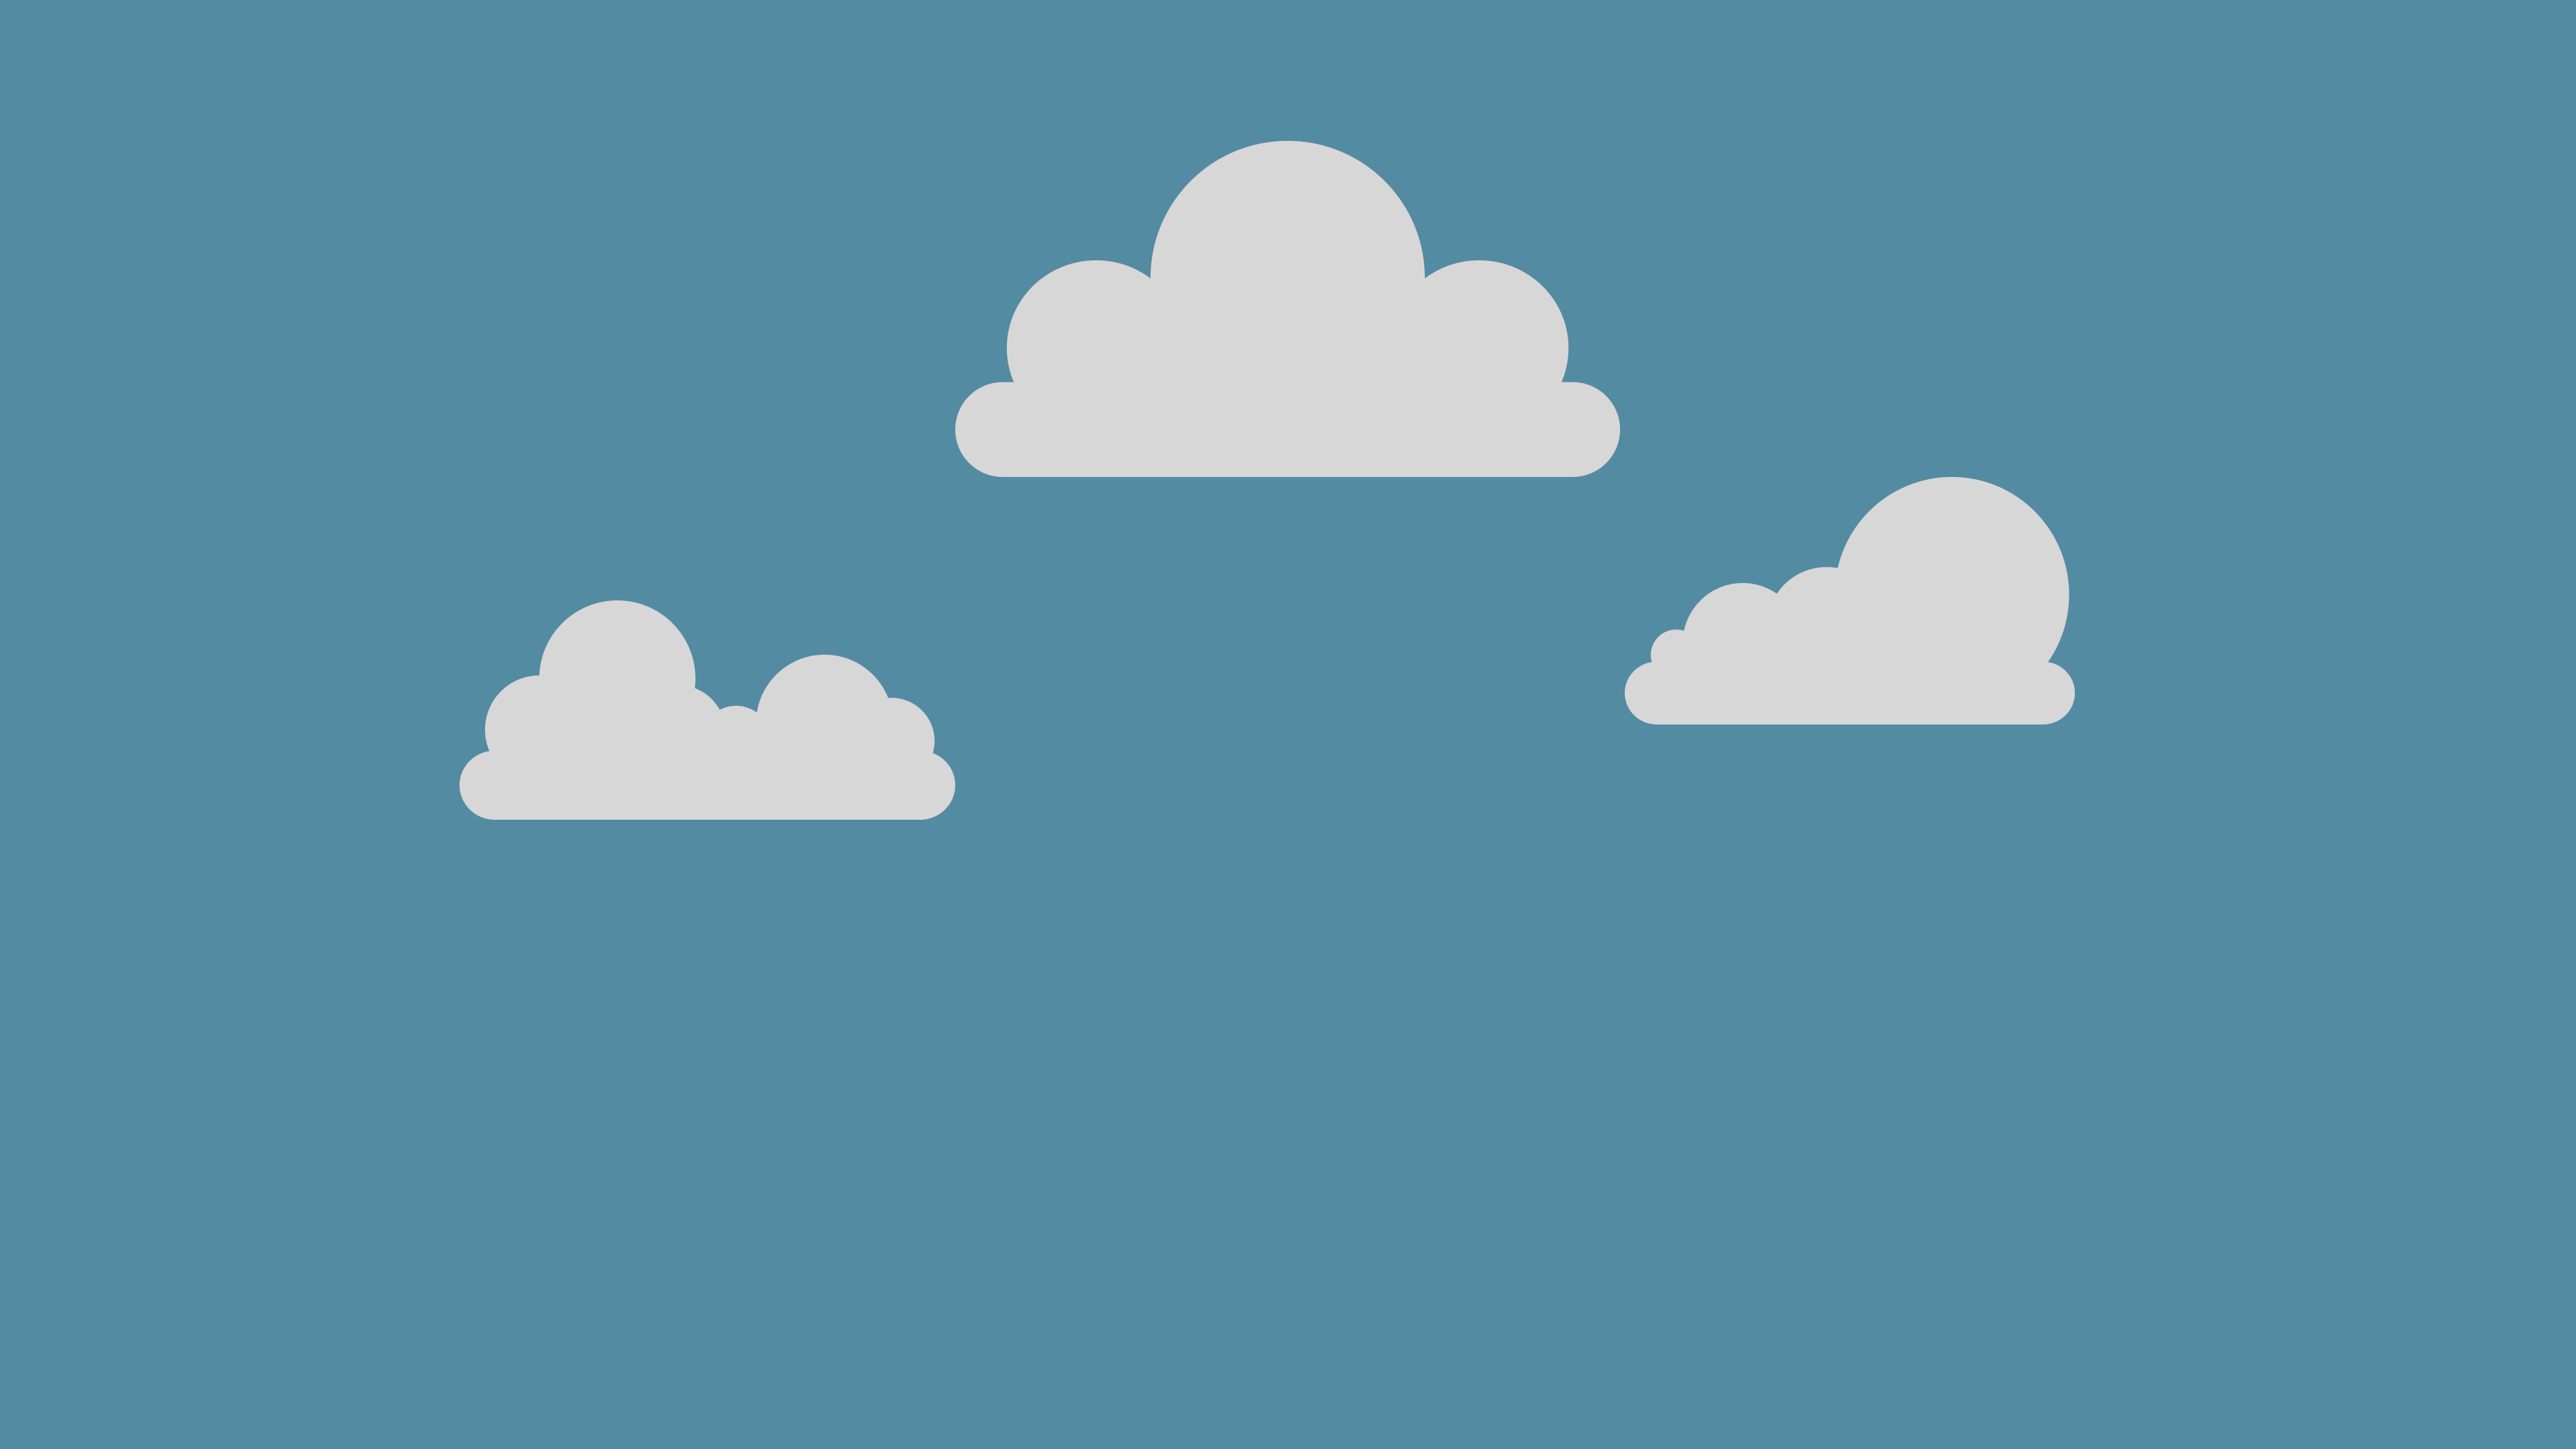 Live Simple Cloud Wallpaper